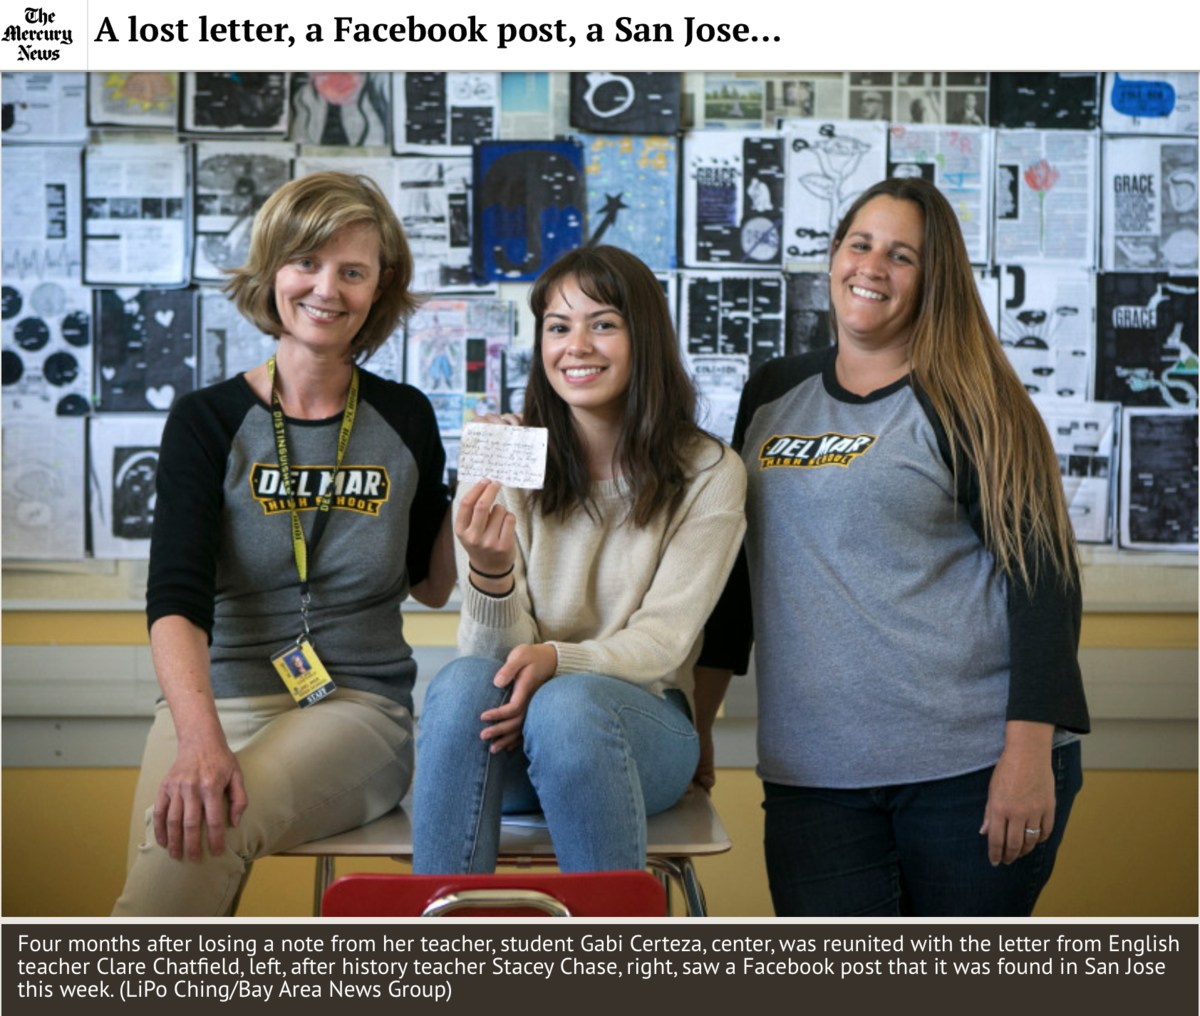 Image of Student, Gabi, with teachers Clare Chatfield and Stacey Chase, as featured in the San Jose Mercury News